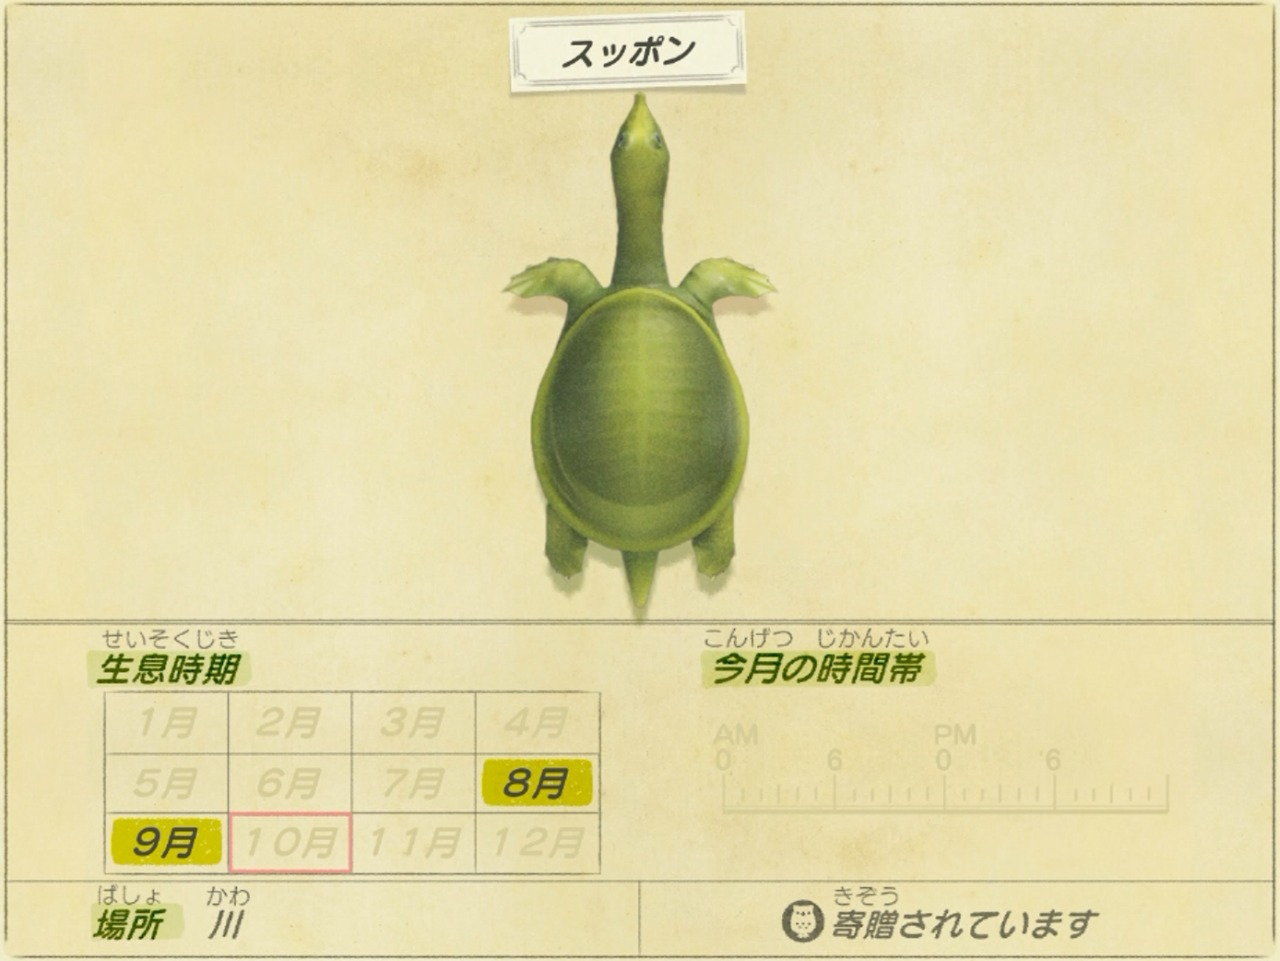 スッポン - Soft-shelled turtle